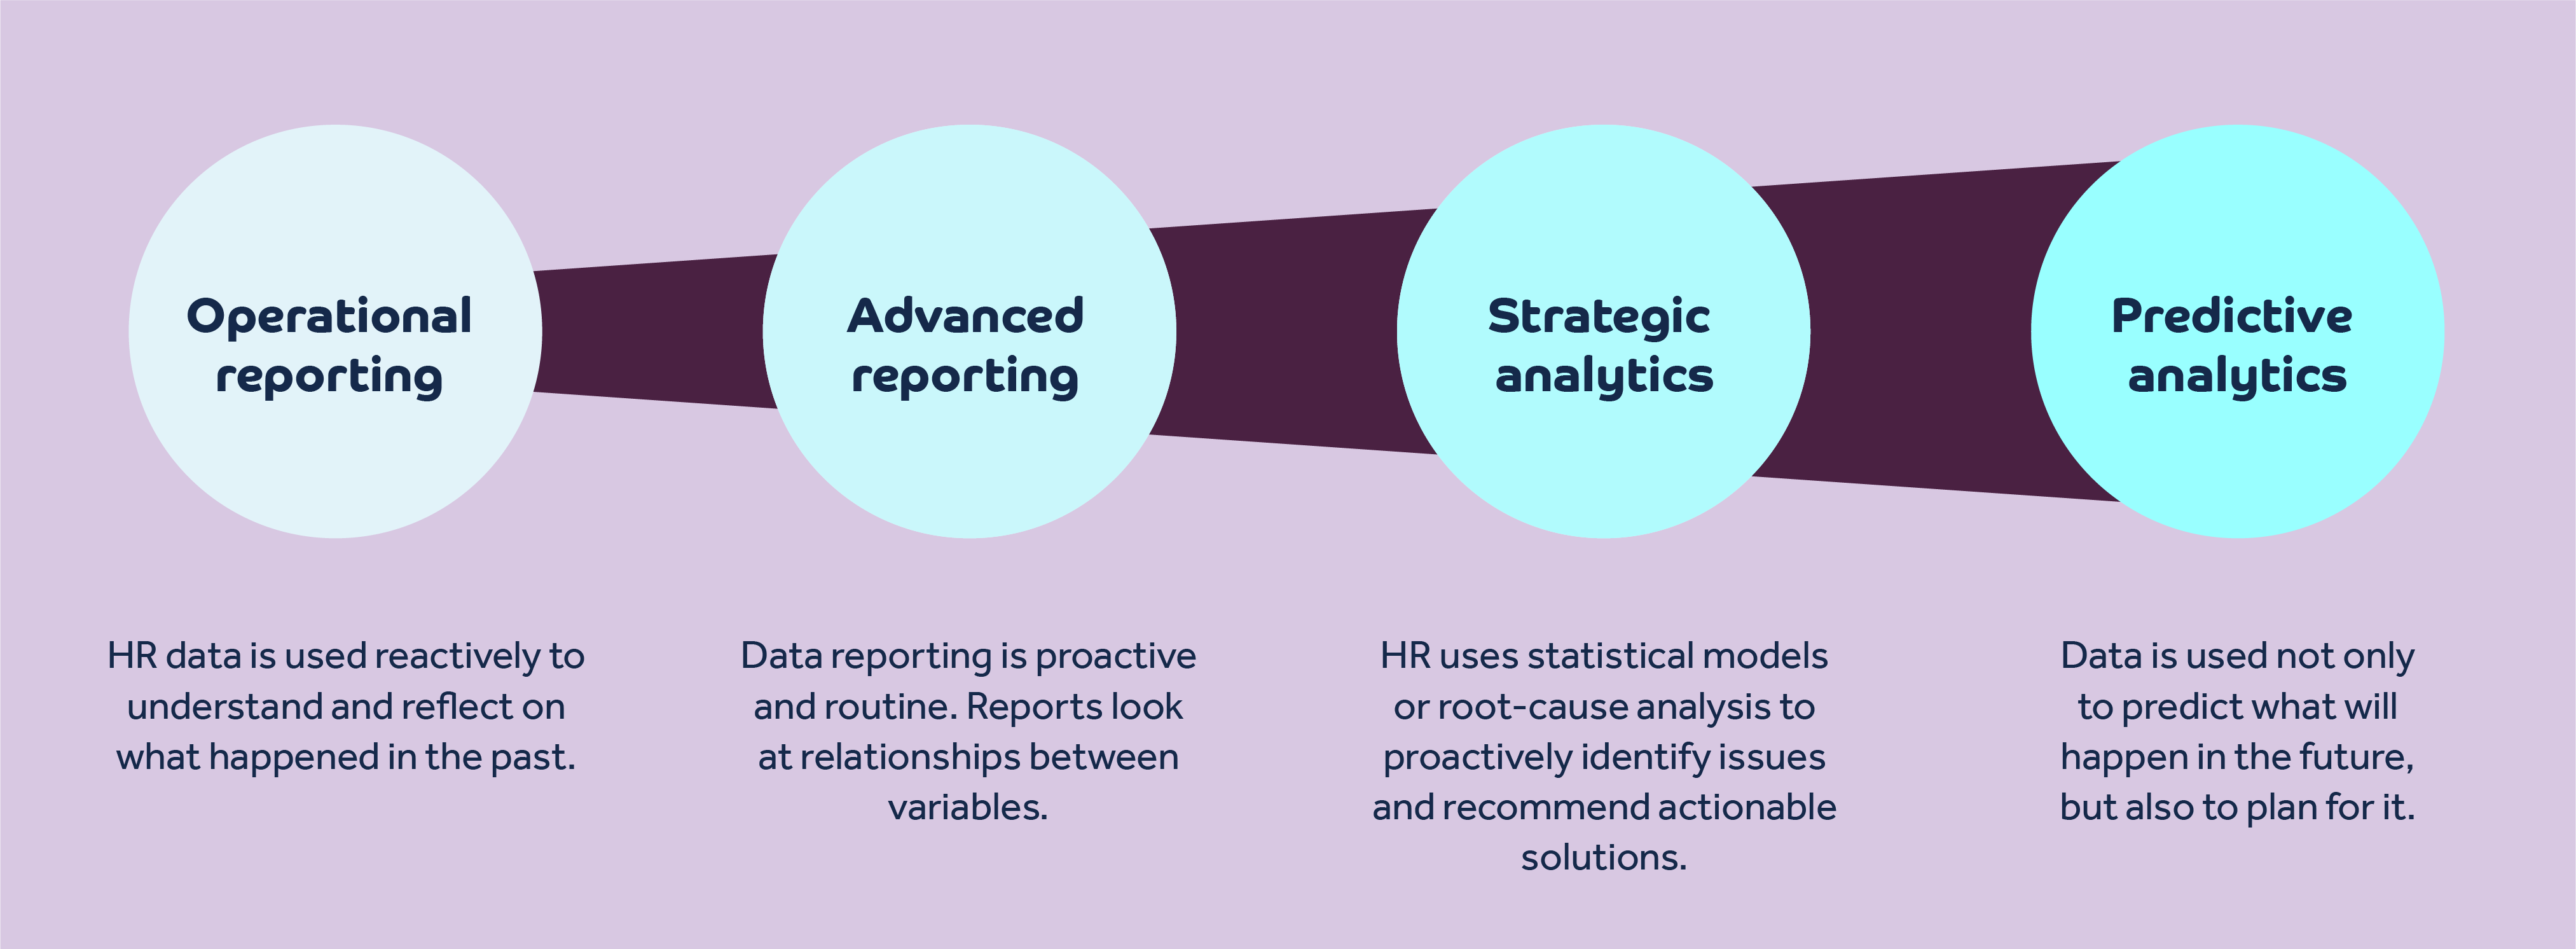 Operational reporting, Advanced reporting, Strategic analytics, Predictive analytics